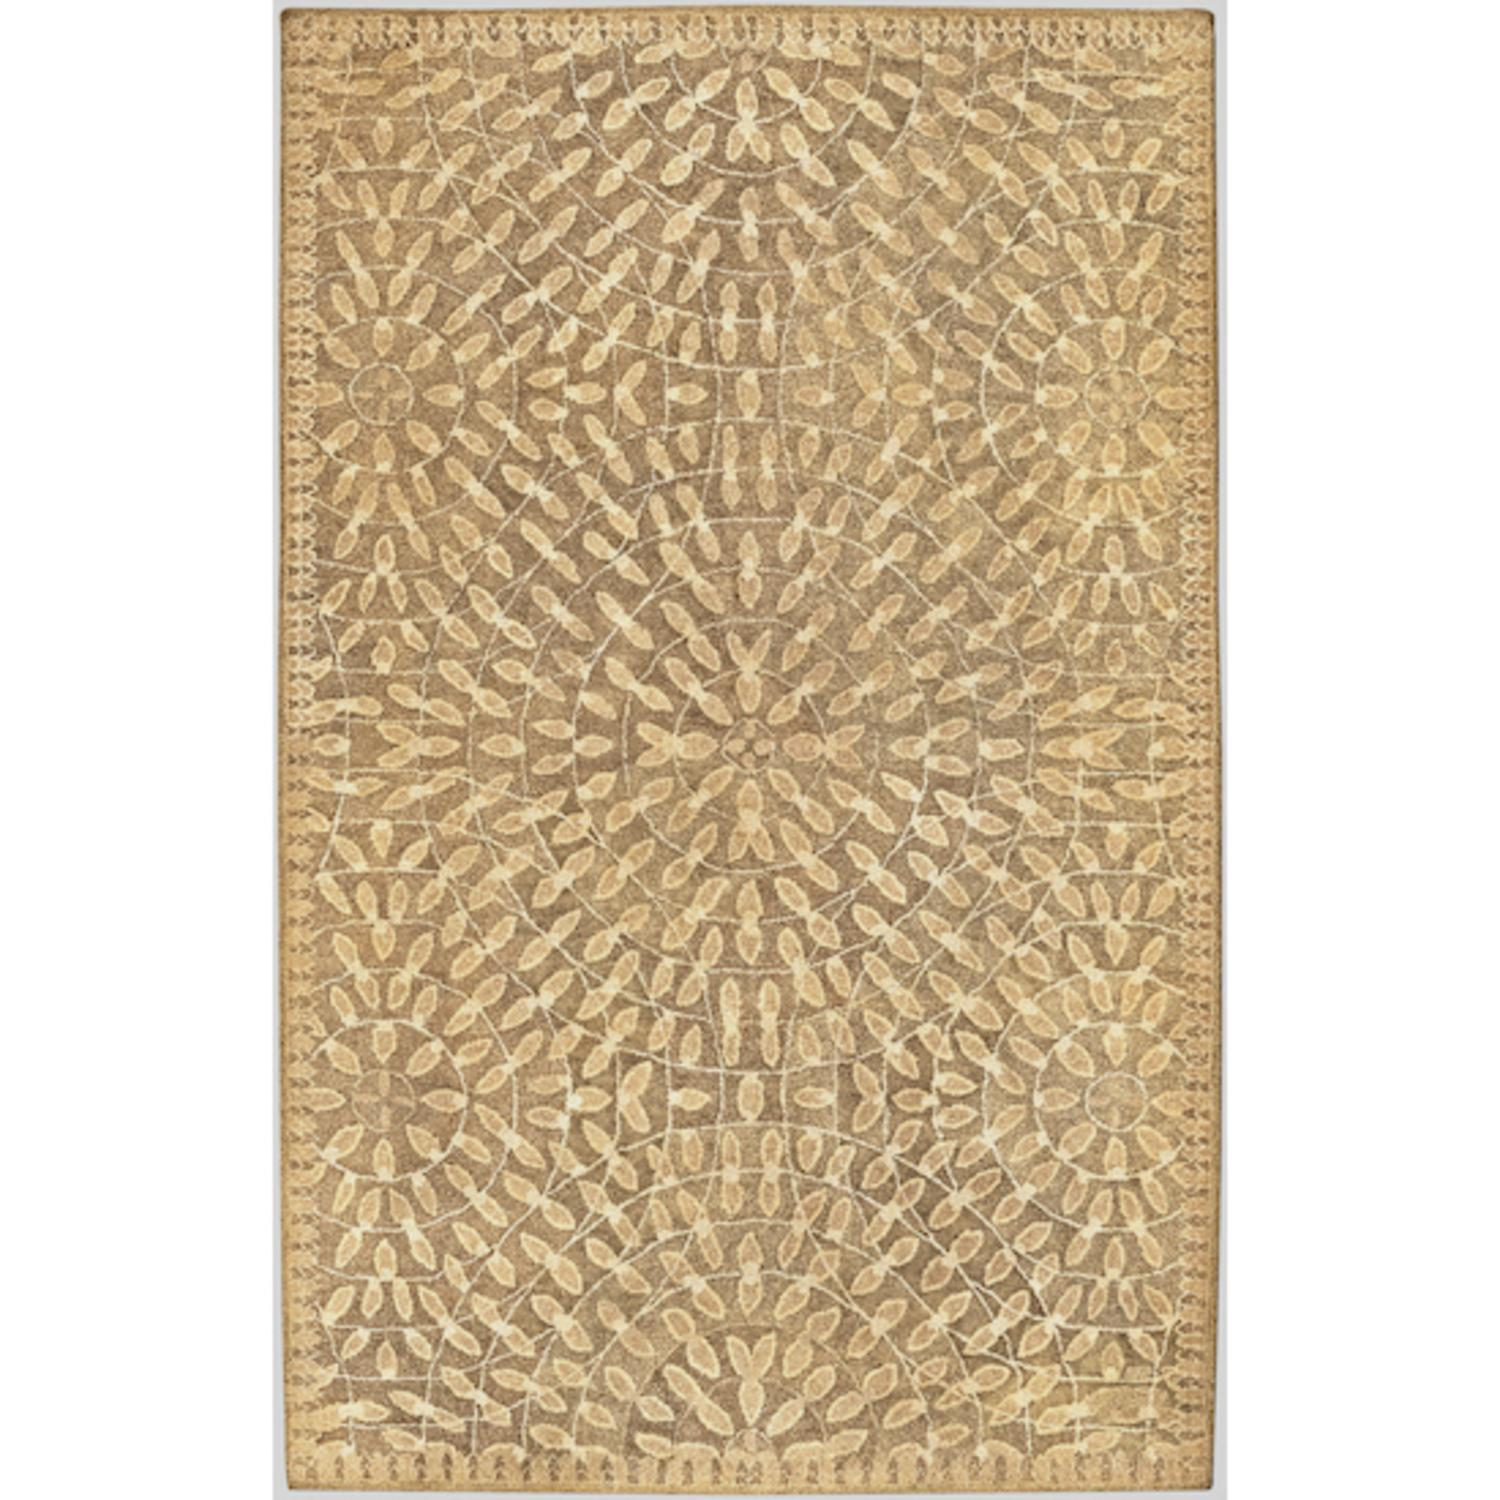 9' x 13' Tawny Mosaic Dark Khaki and Safari Tan Wool Area Throw Rug